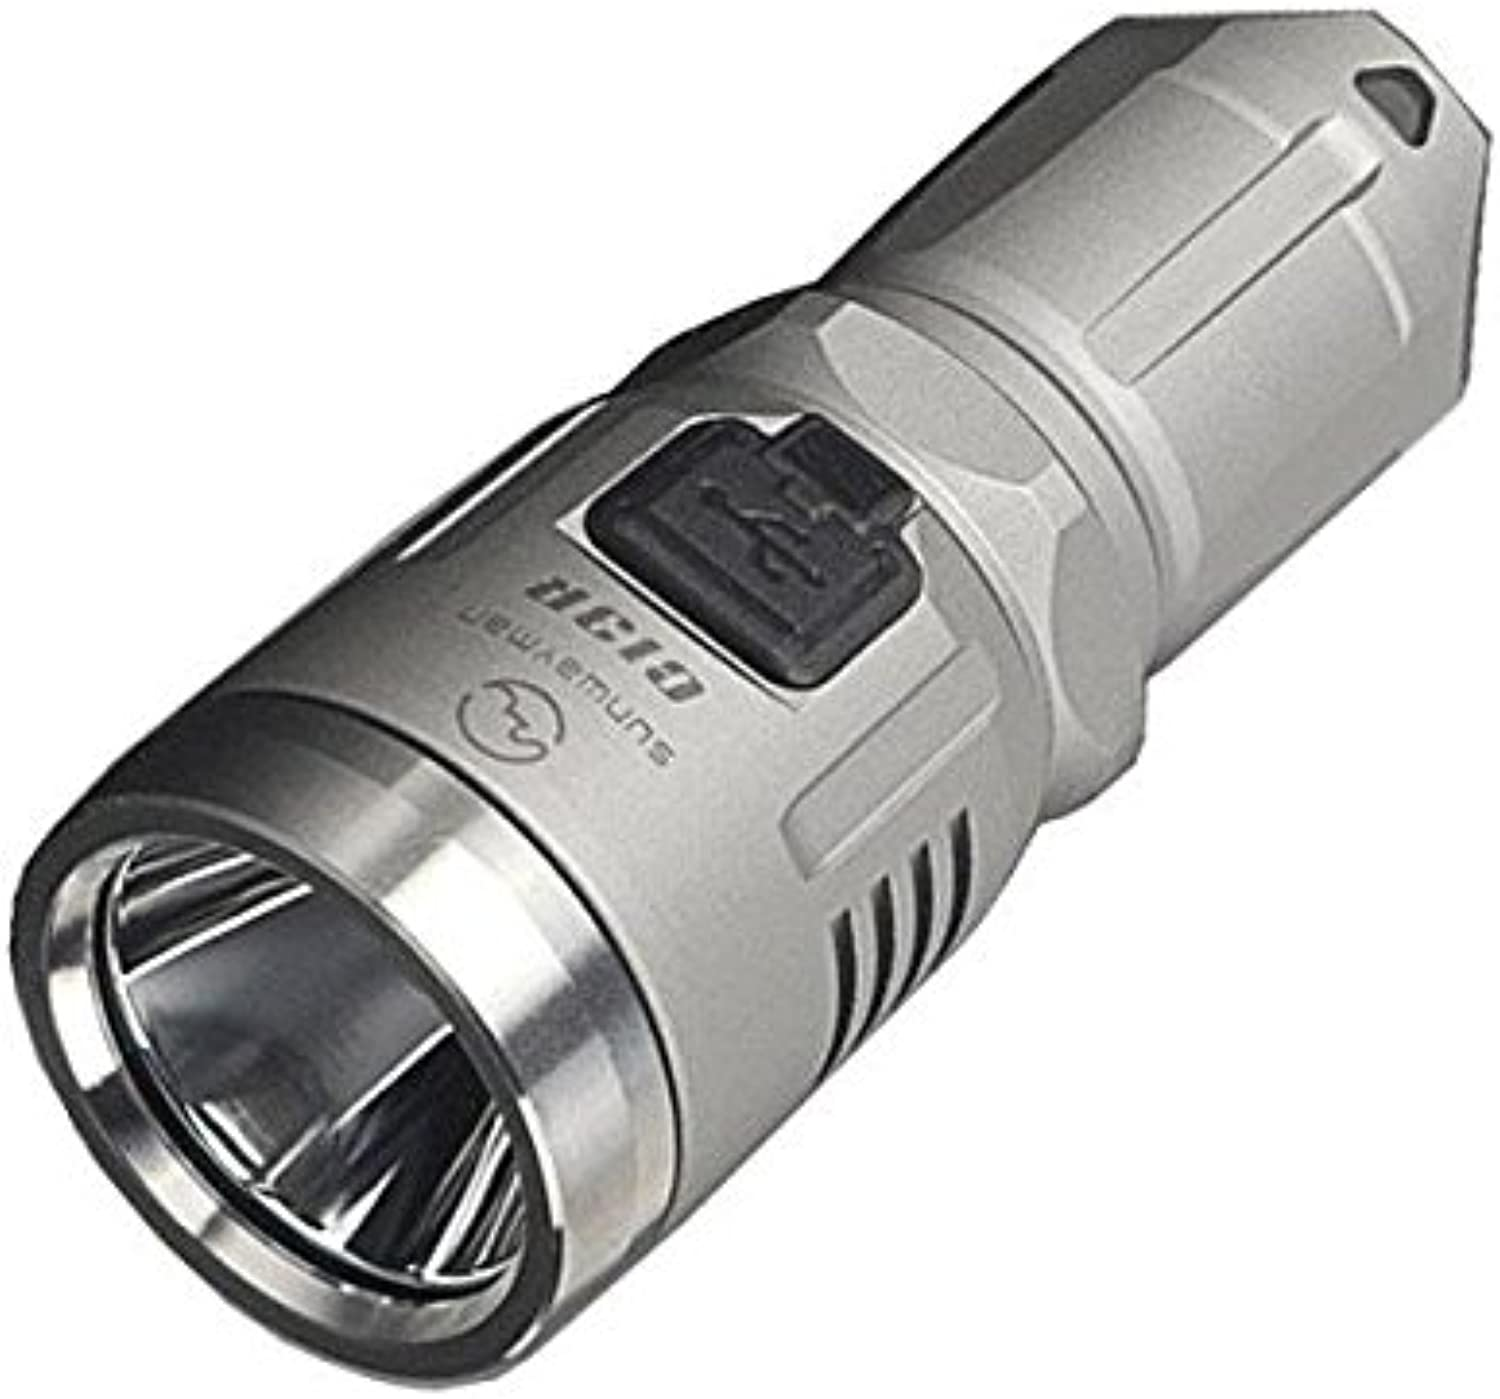 Sunwayman C13R XM-L2 U3 USB Rechargeable Super Compact Flashlight -380 Lumens -Available in grau or schwarz